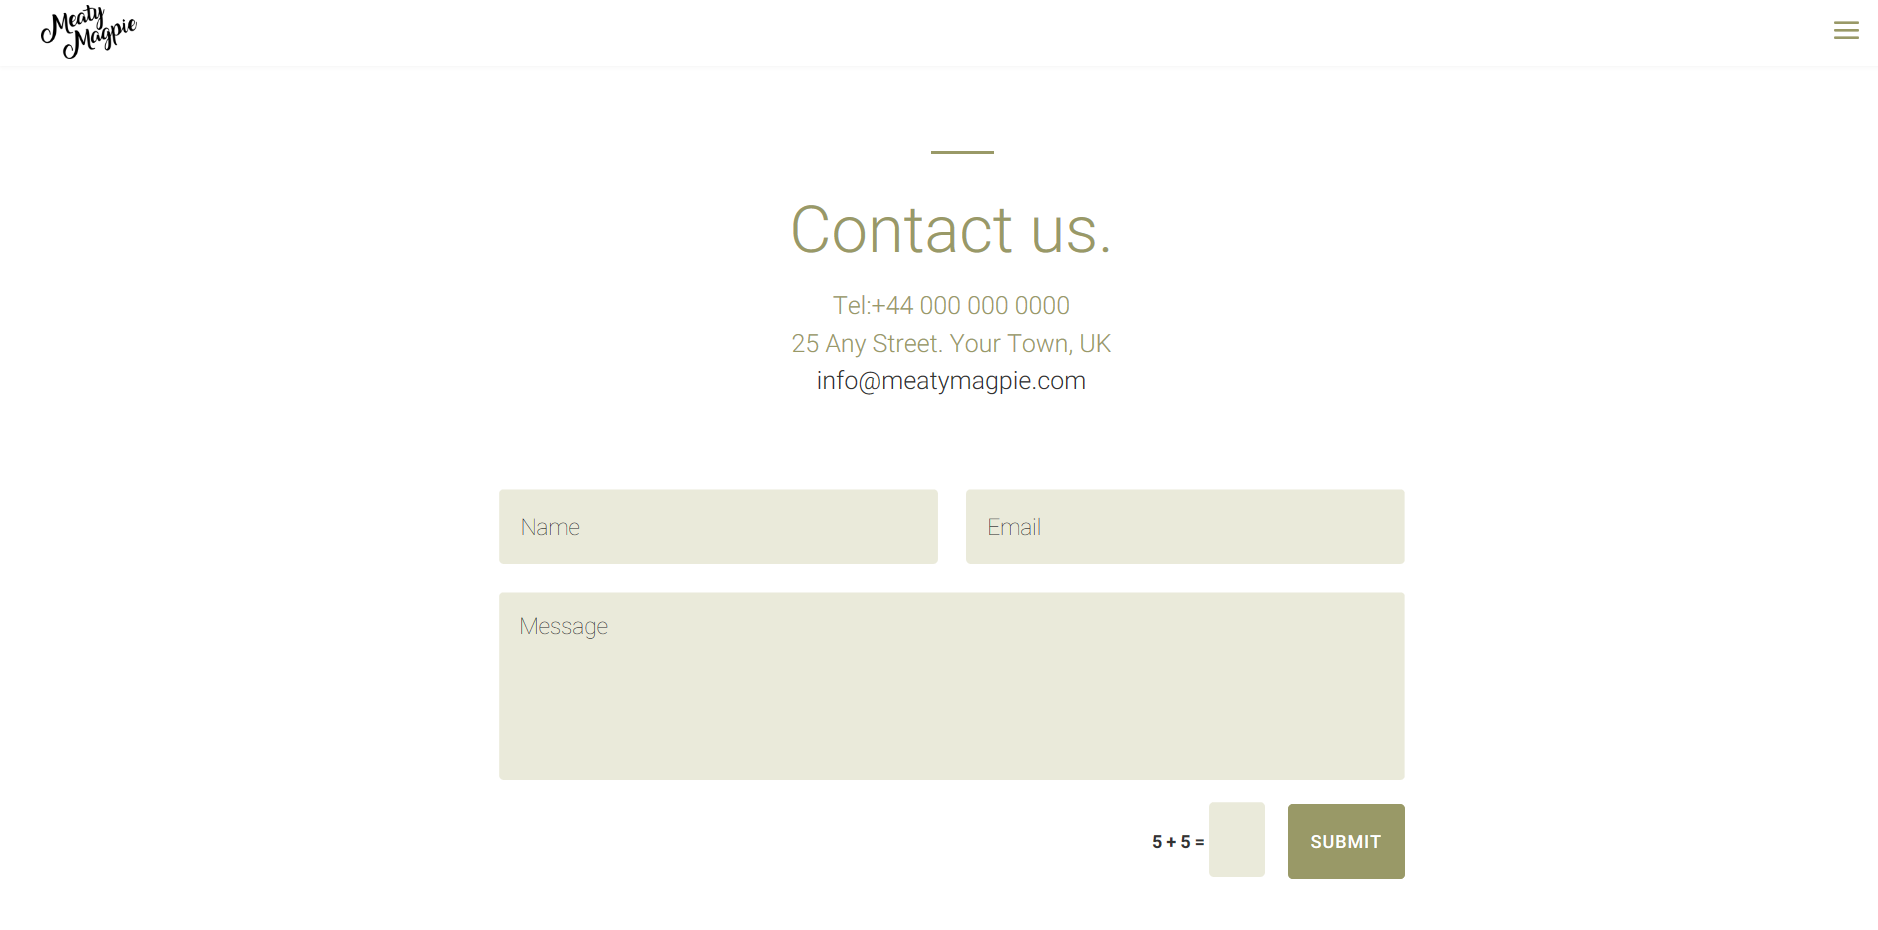 Wireframe of an website contact page